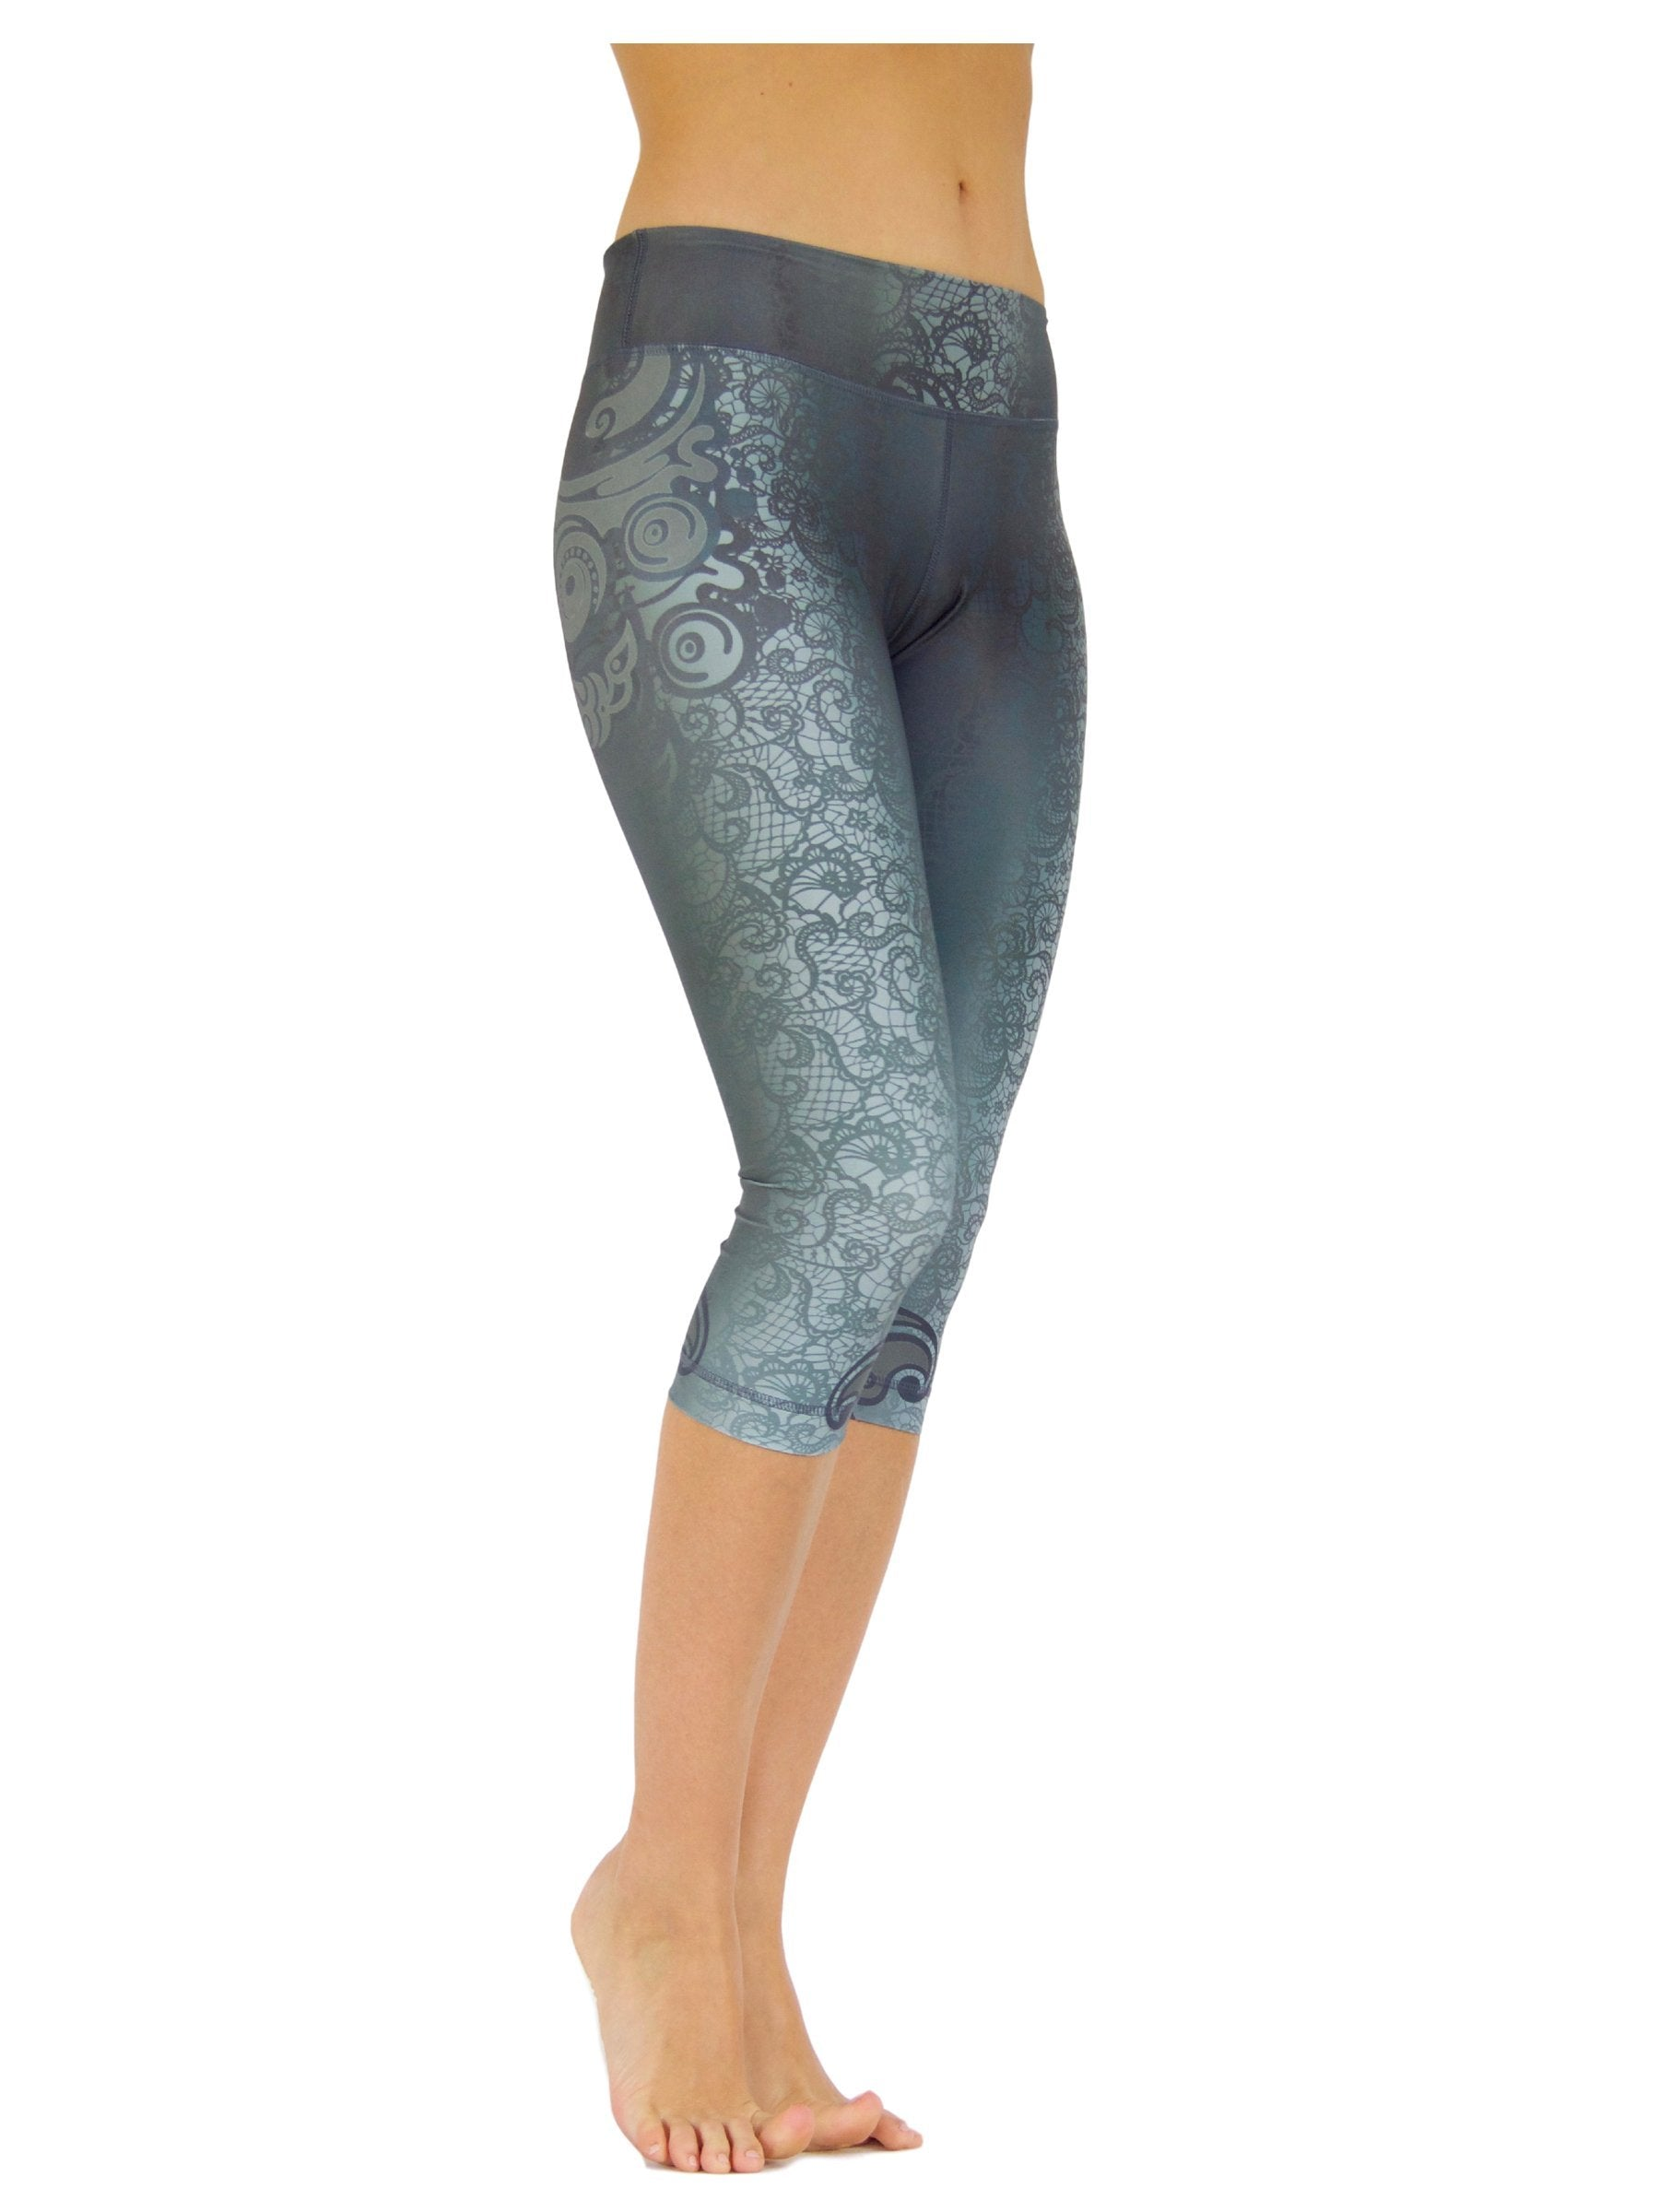 Maori Magic by Niyama - High Quality, , Yoga Legging for Movement Artists.